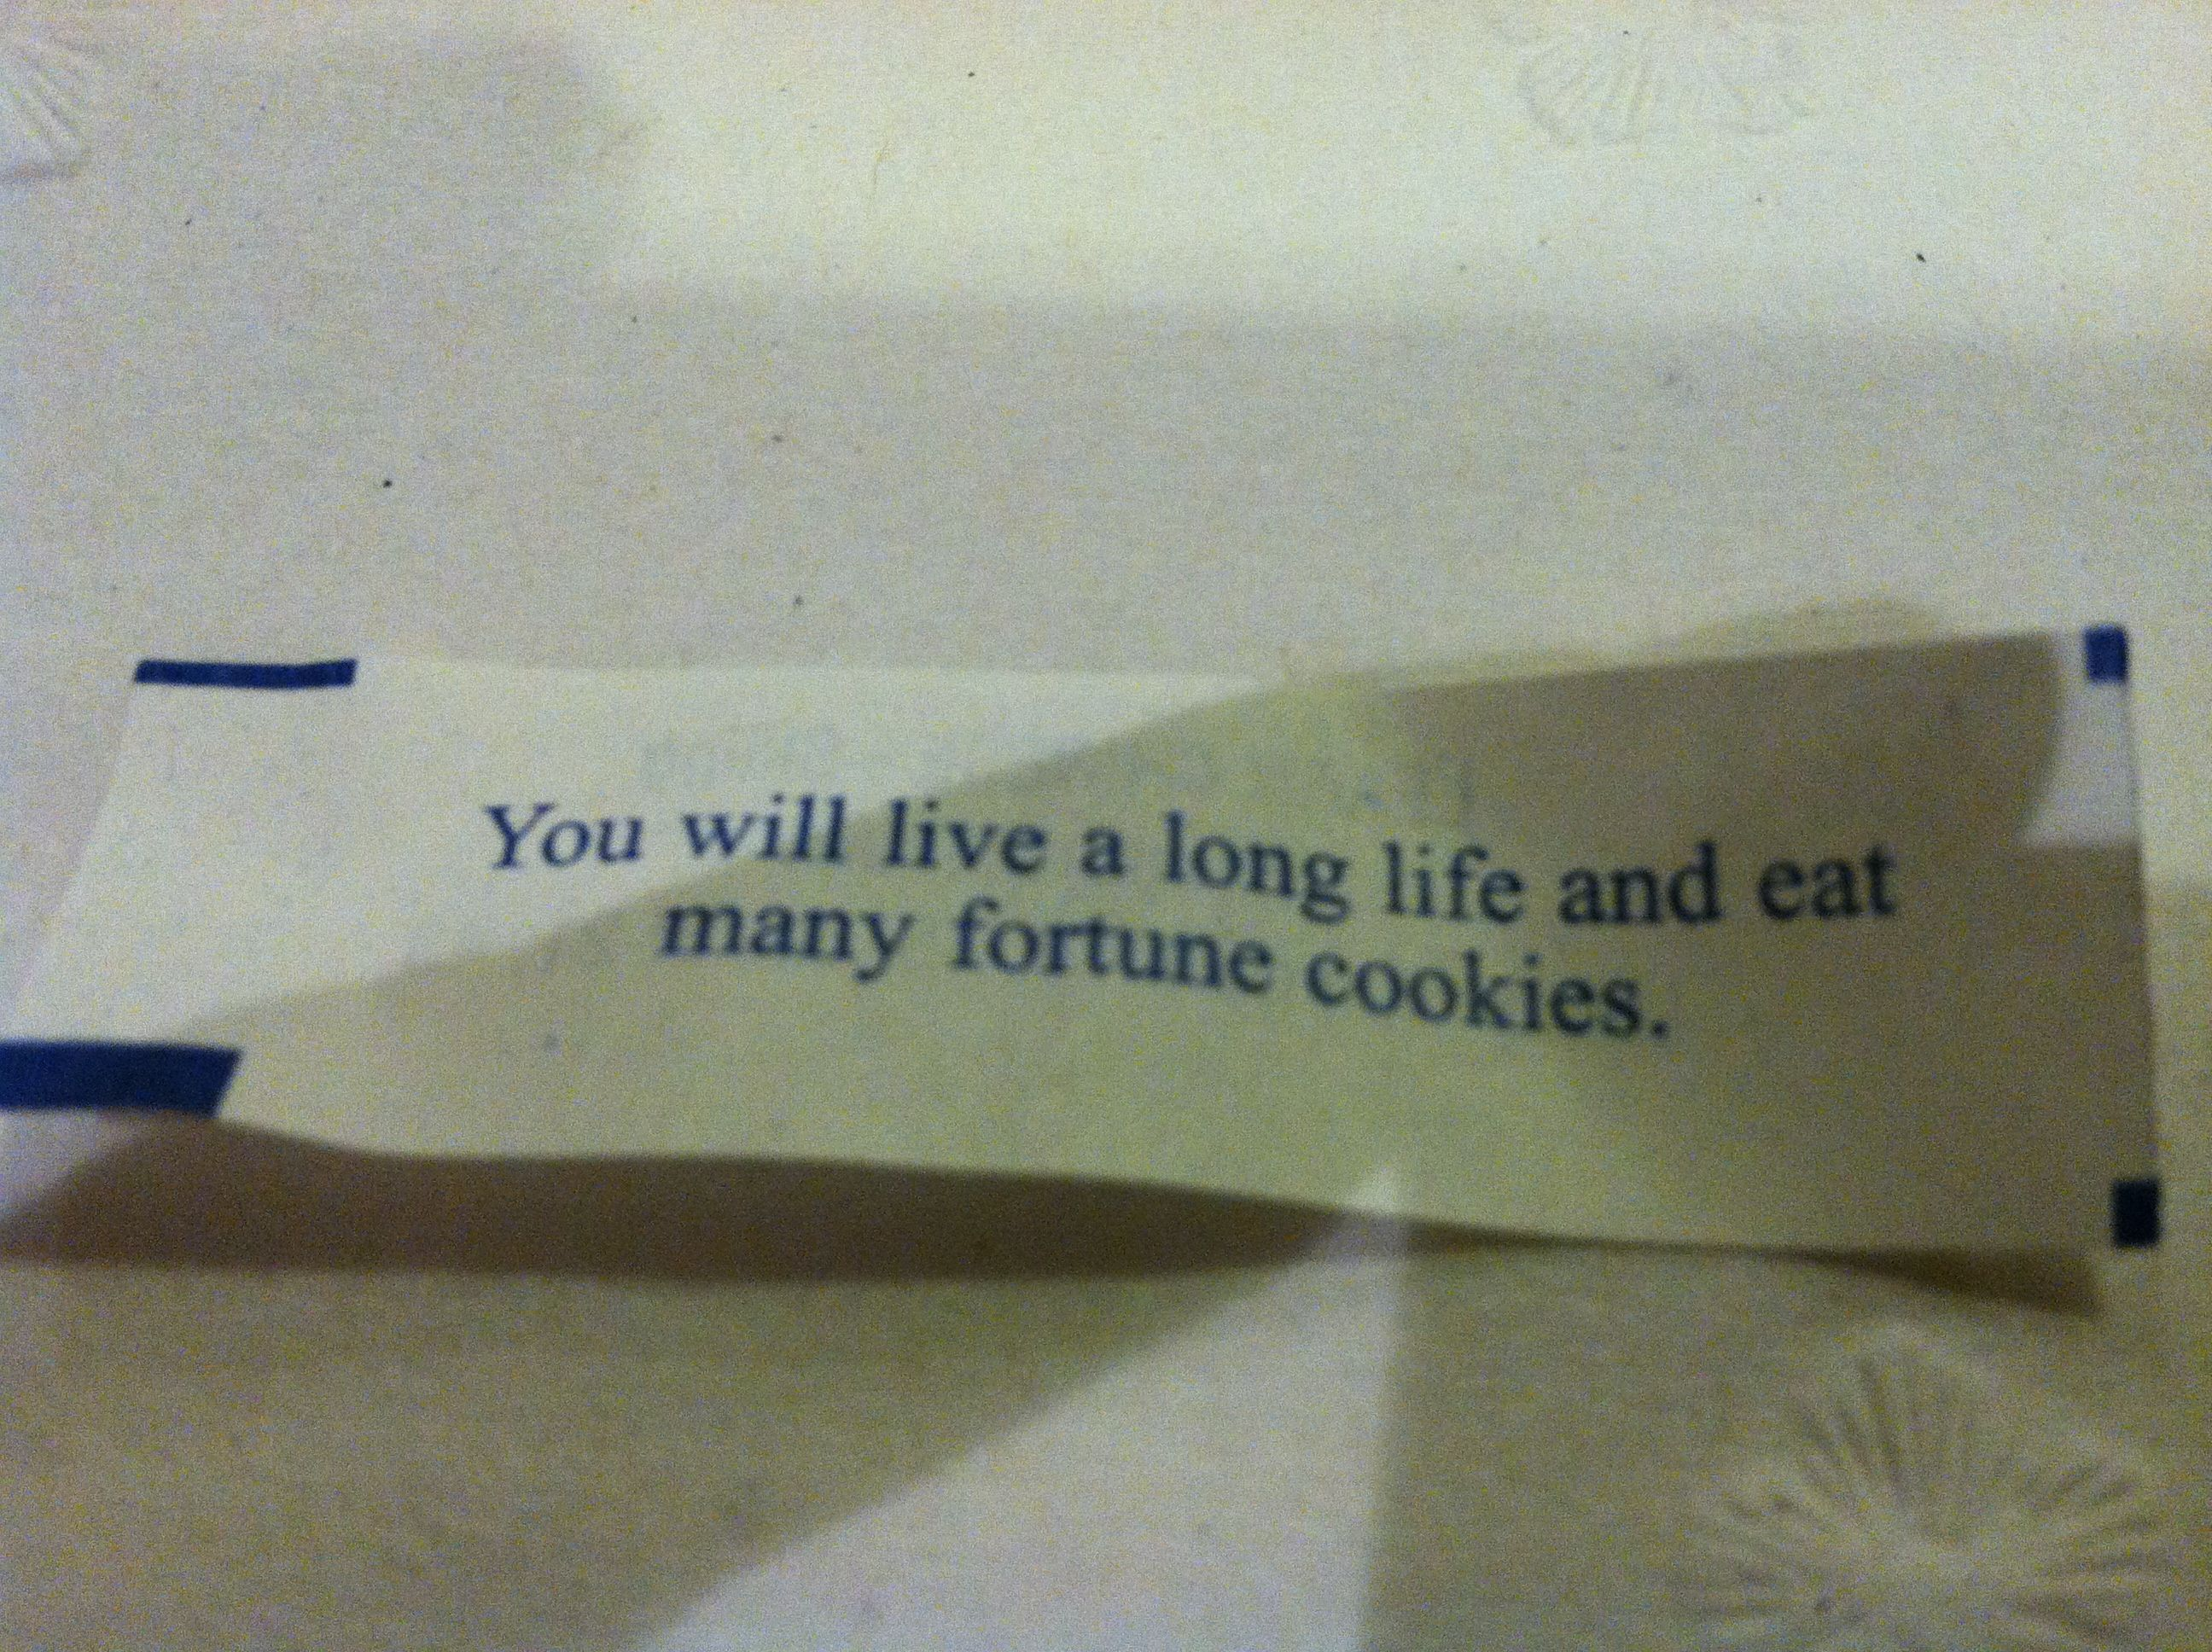 Fortunes are usually correct.